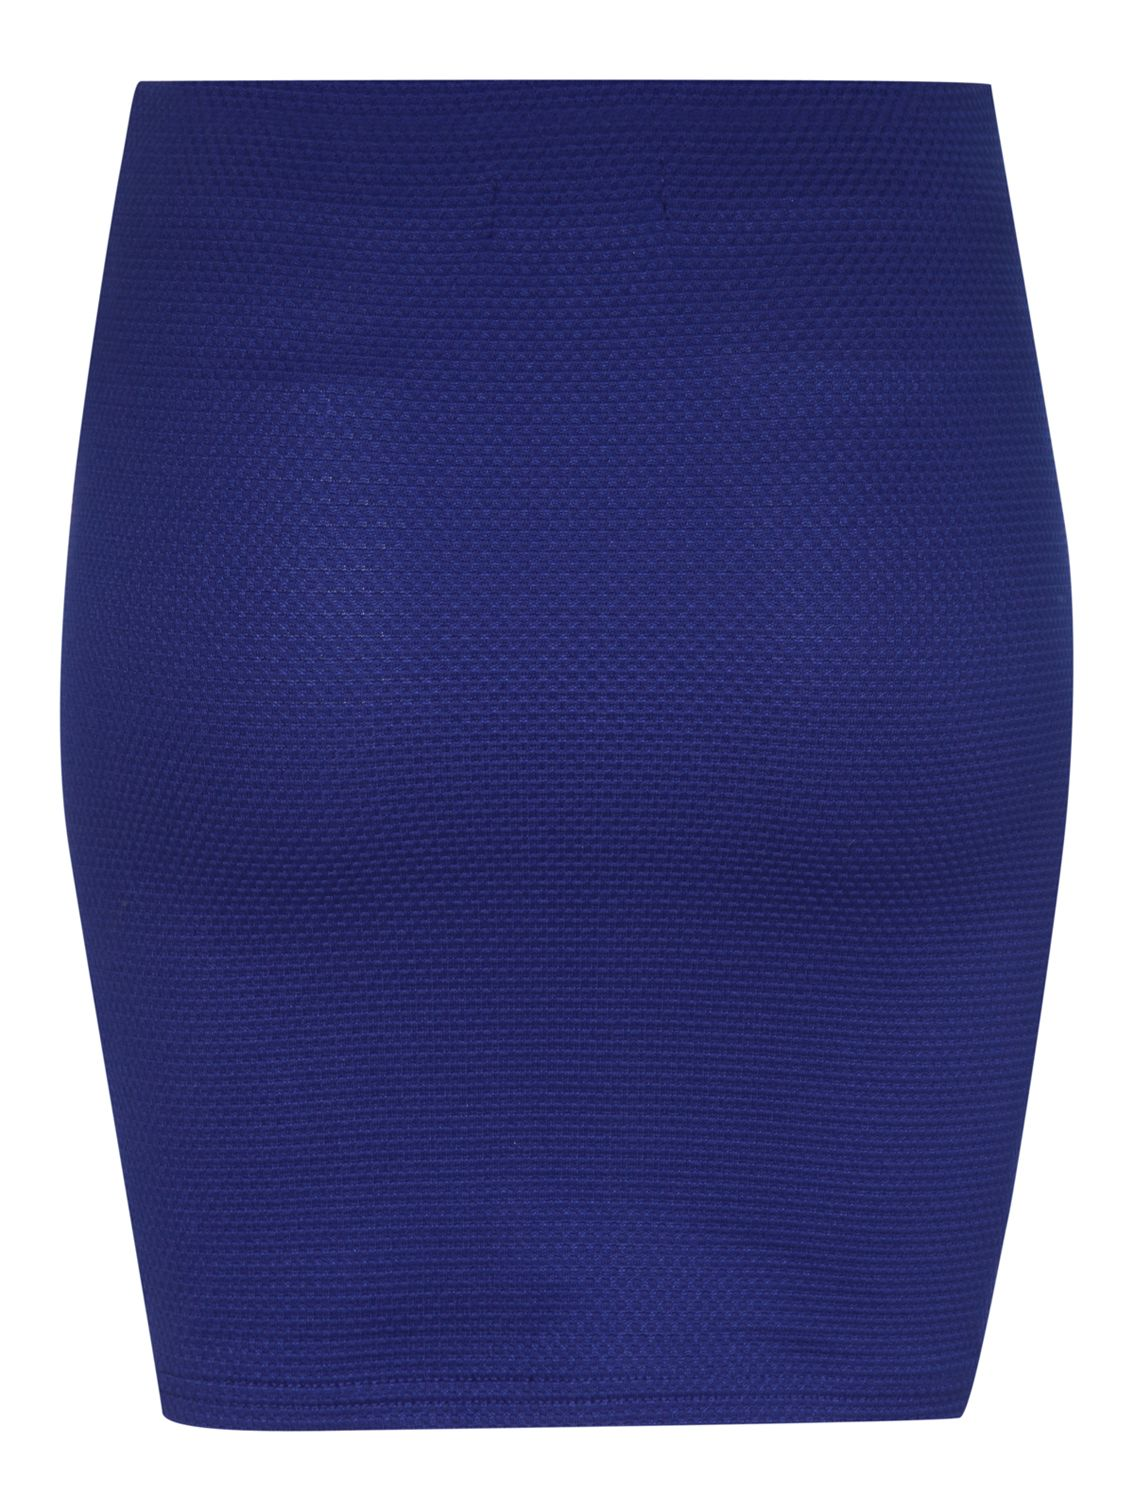 Textured caviar skirt